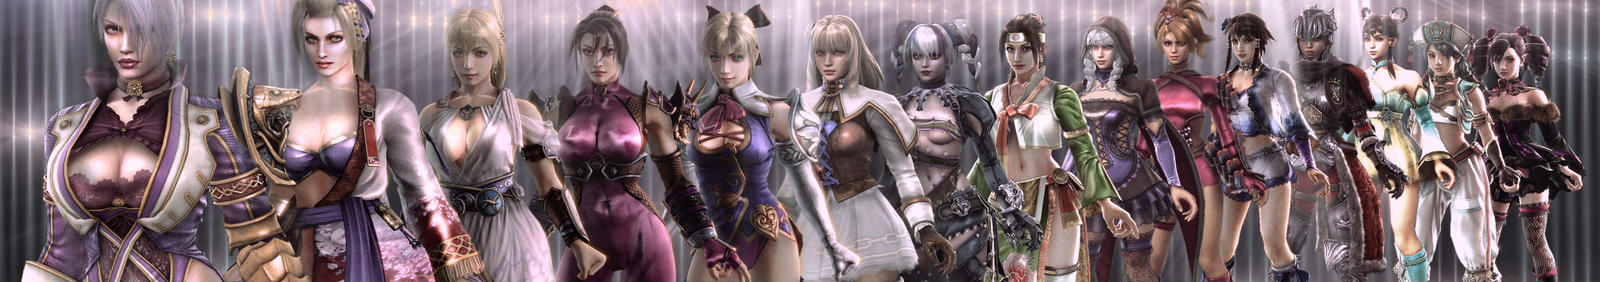 Are definitely soul calibur breast size chart the